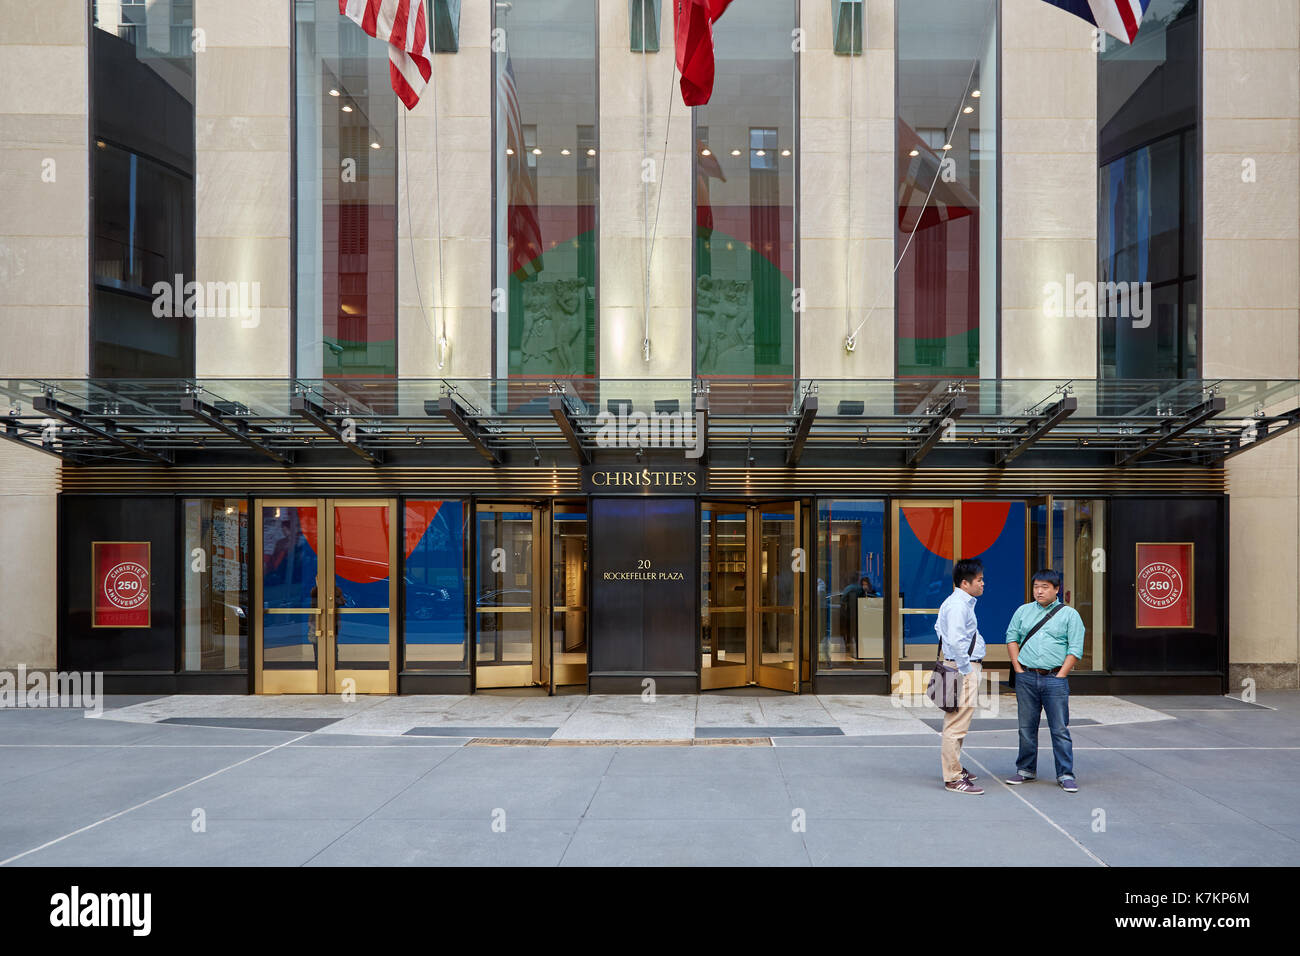 Christie's American branch entrance with people in Rockefeller Center in New York - Stock Image